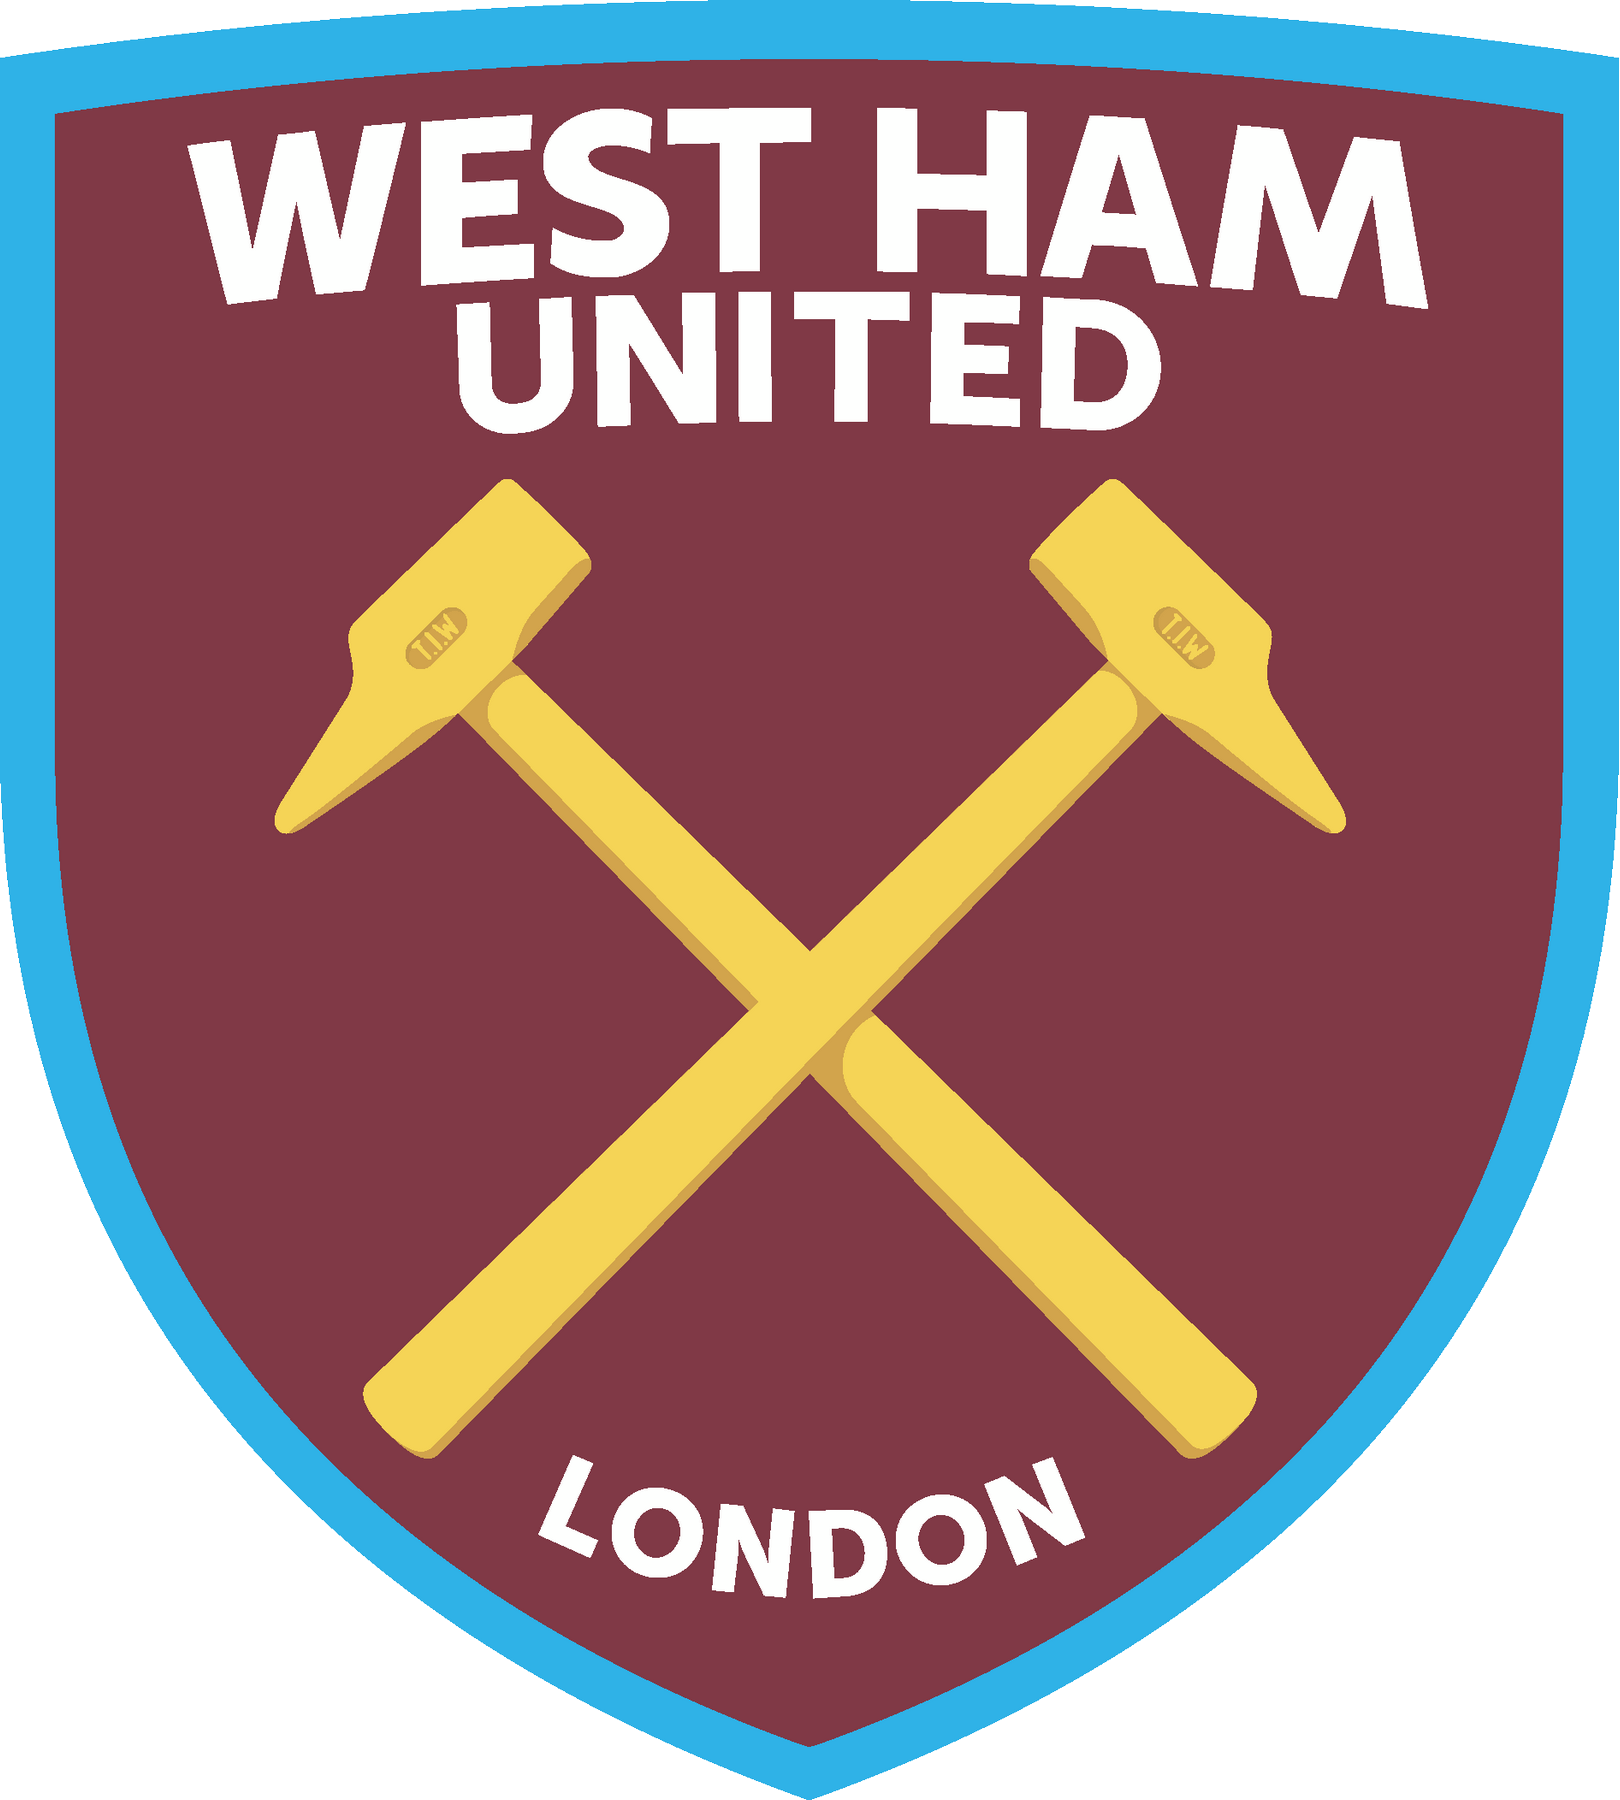 west ham united logo logoeps.net